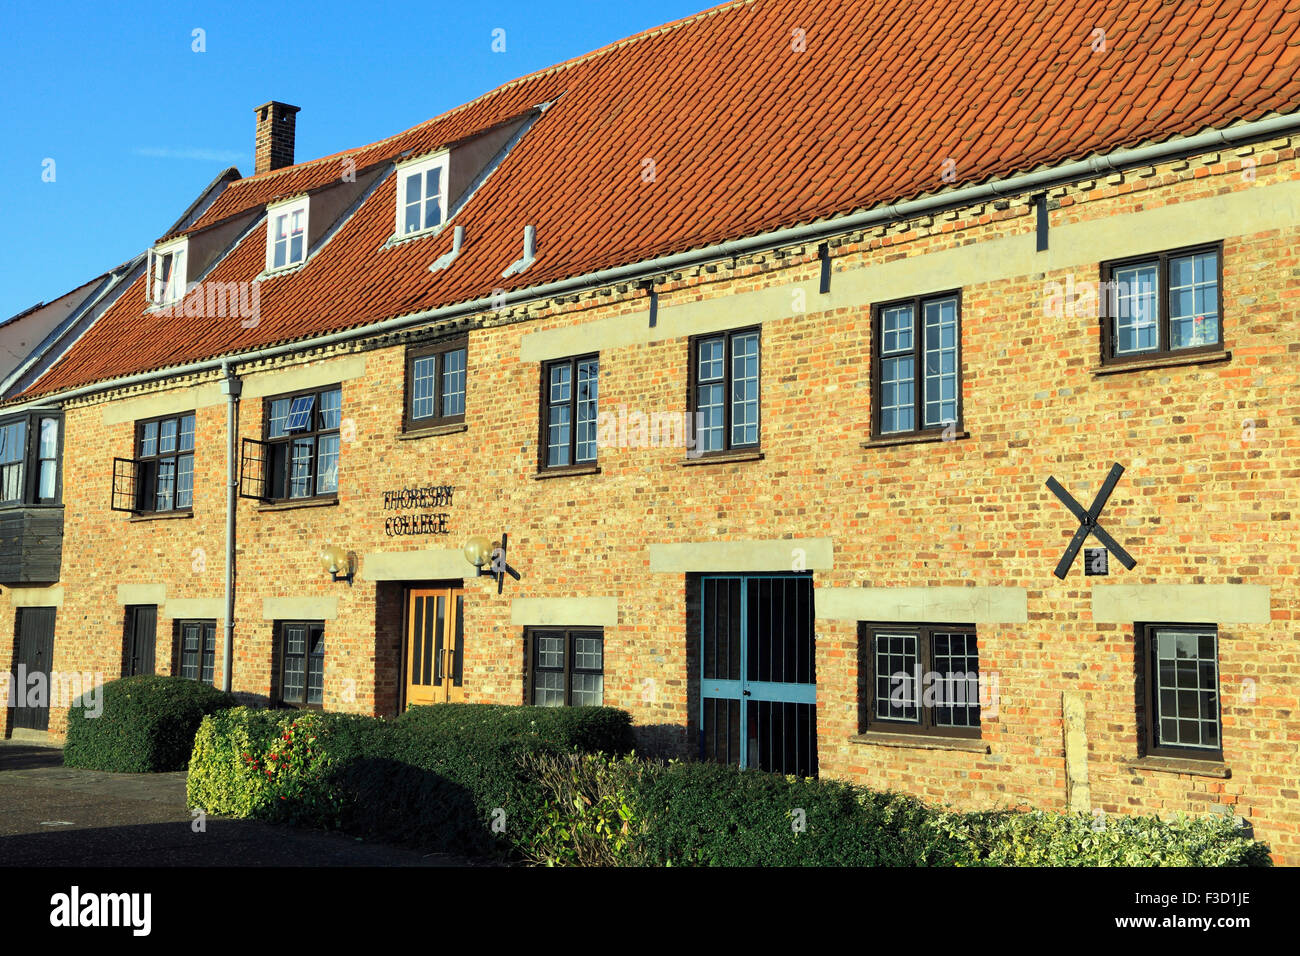 Thoresby College, medieval collegiate preserved building, Kings Lynn Norfolk England UK - Stock Image